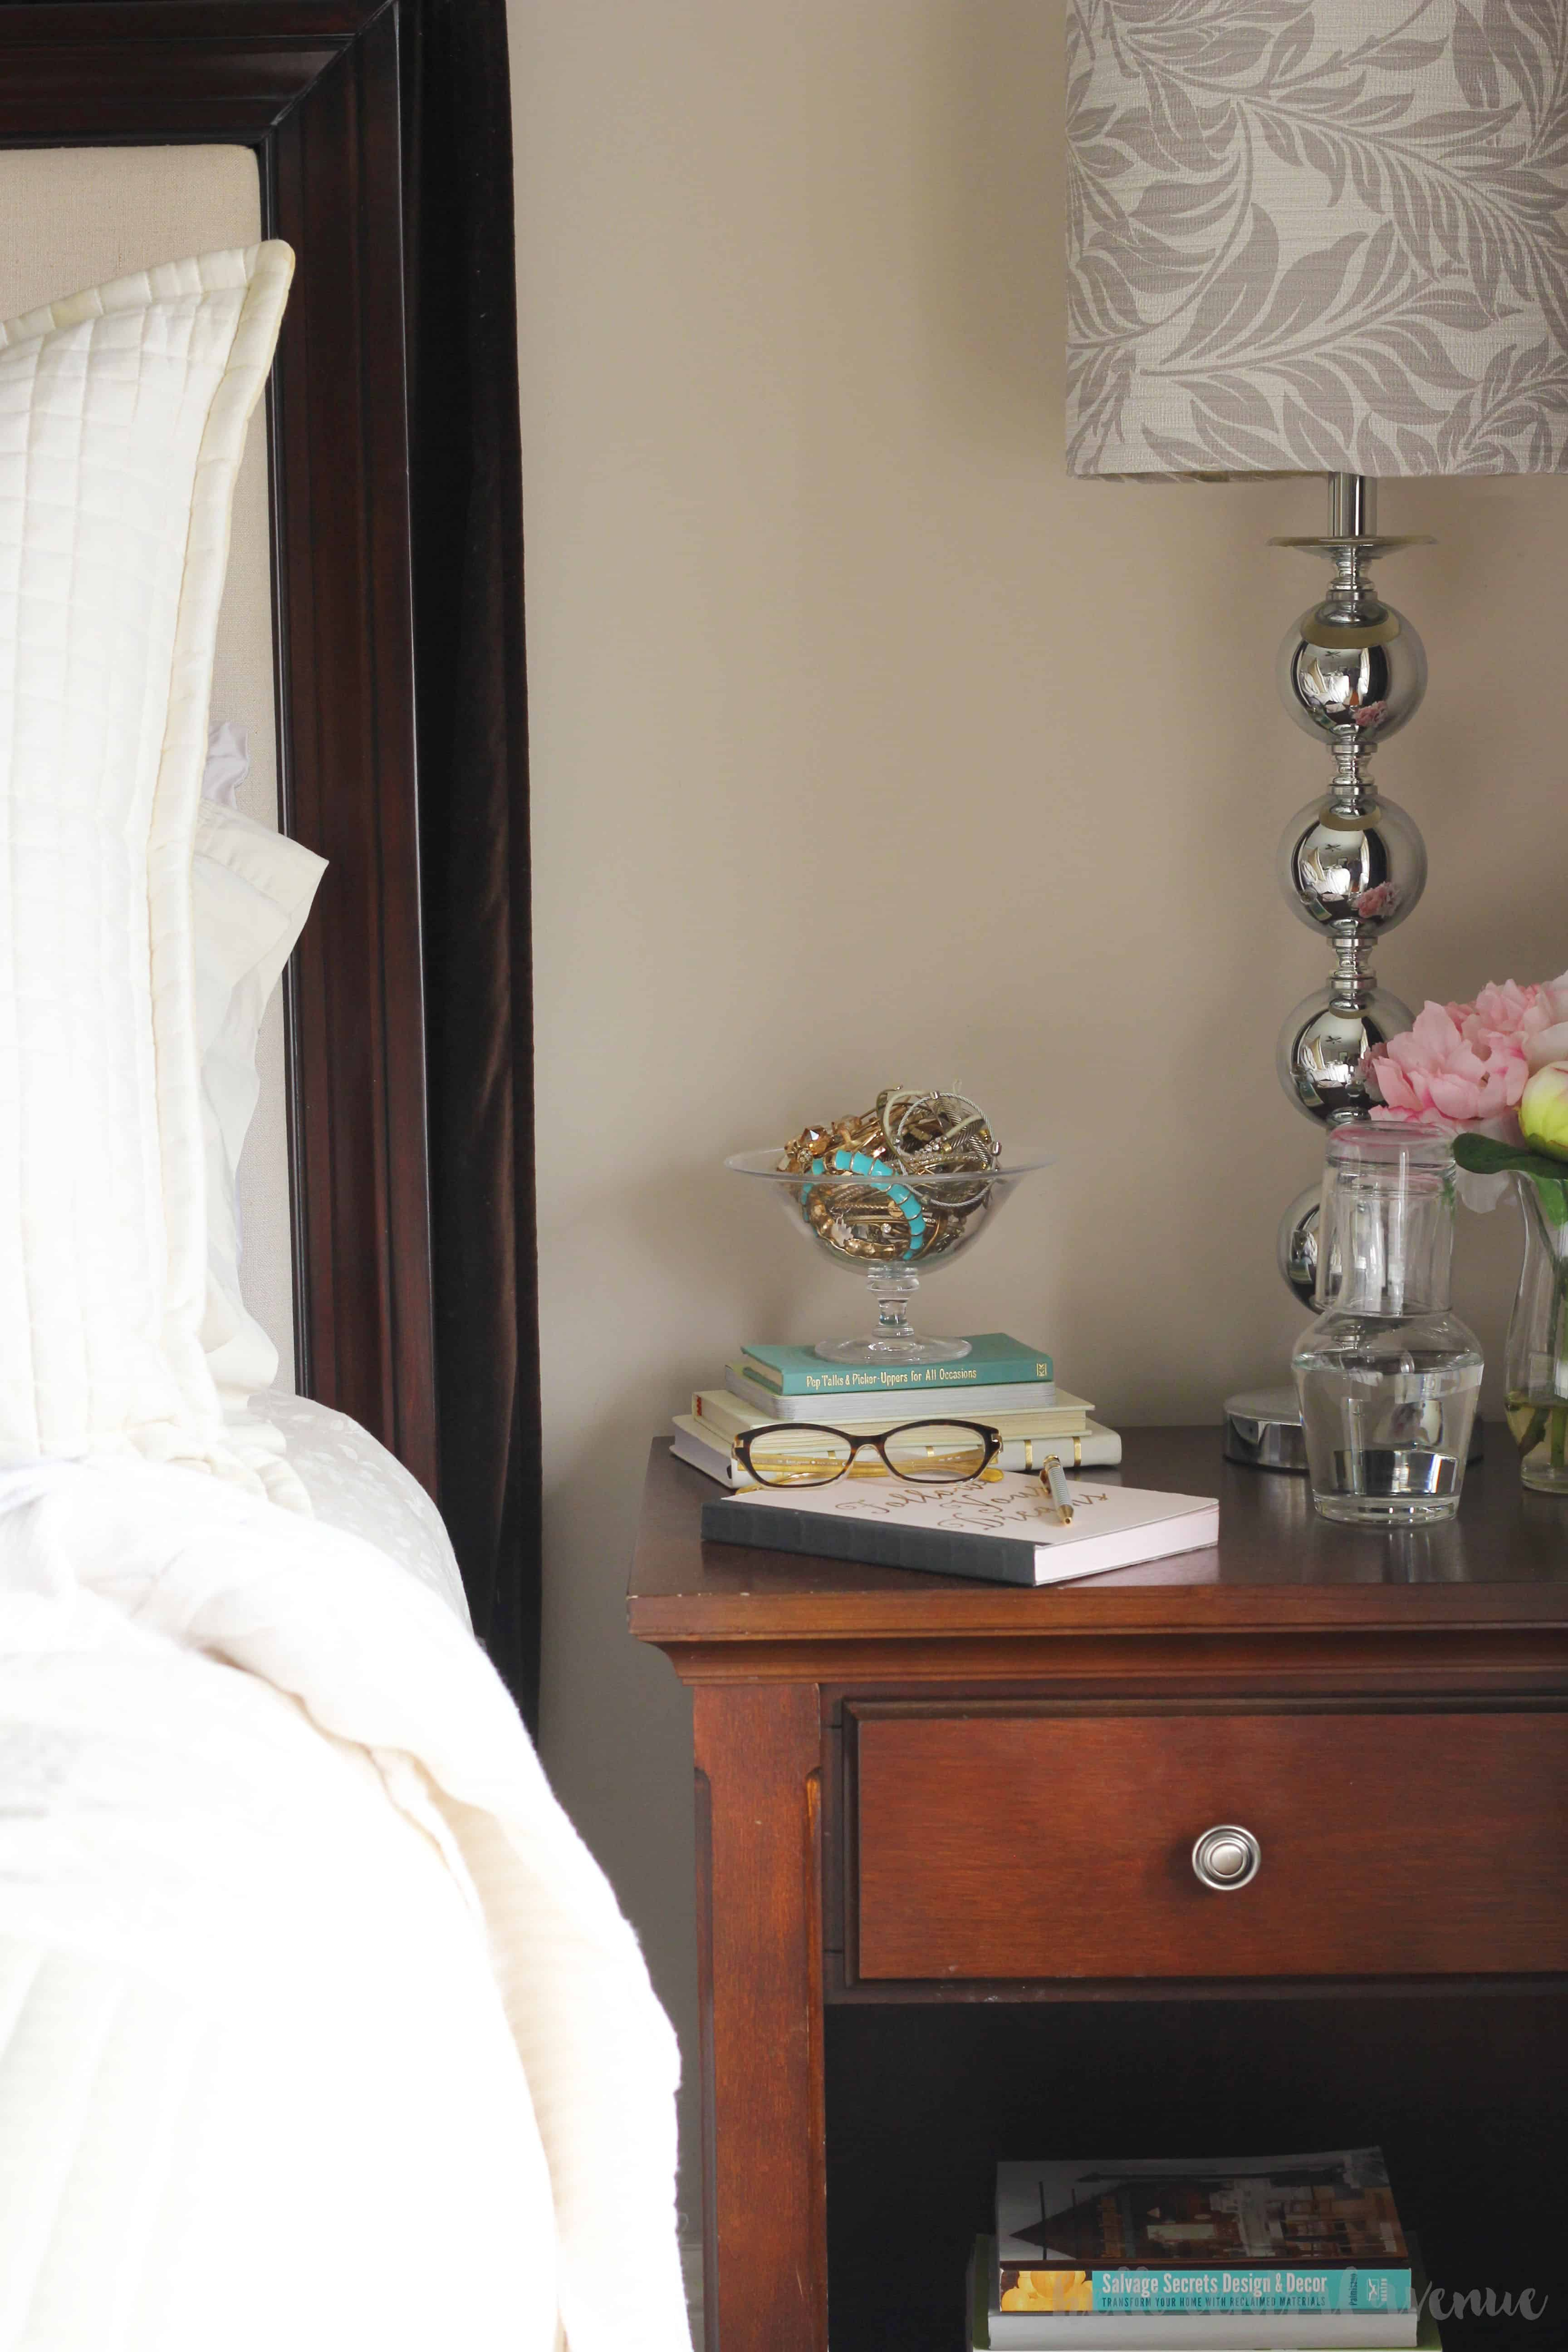 Tips to get more sleep with a tiny bedroom refresh and a new nightly routine. Being organized can help you feel refreshed.